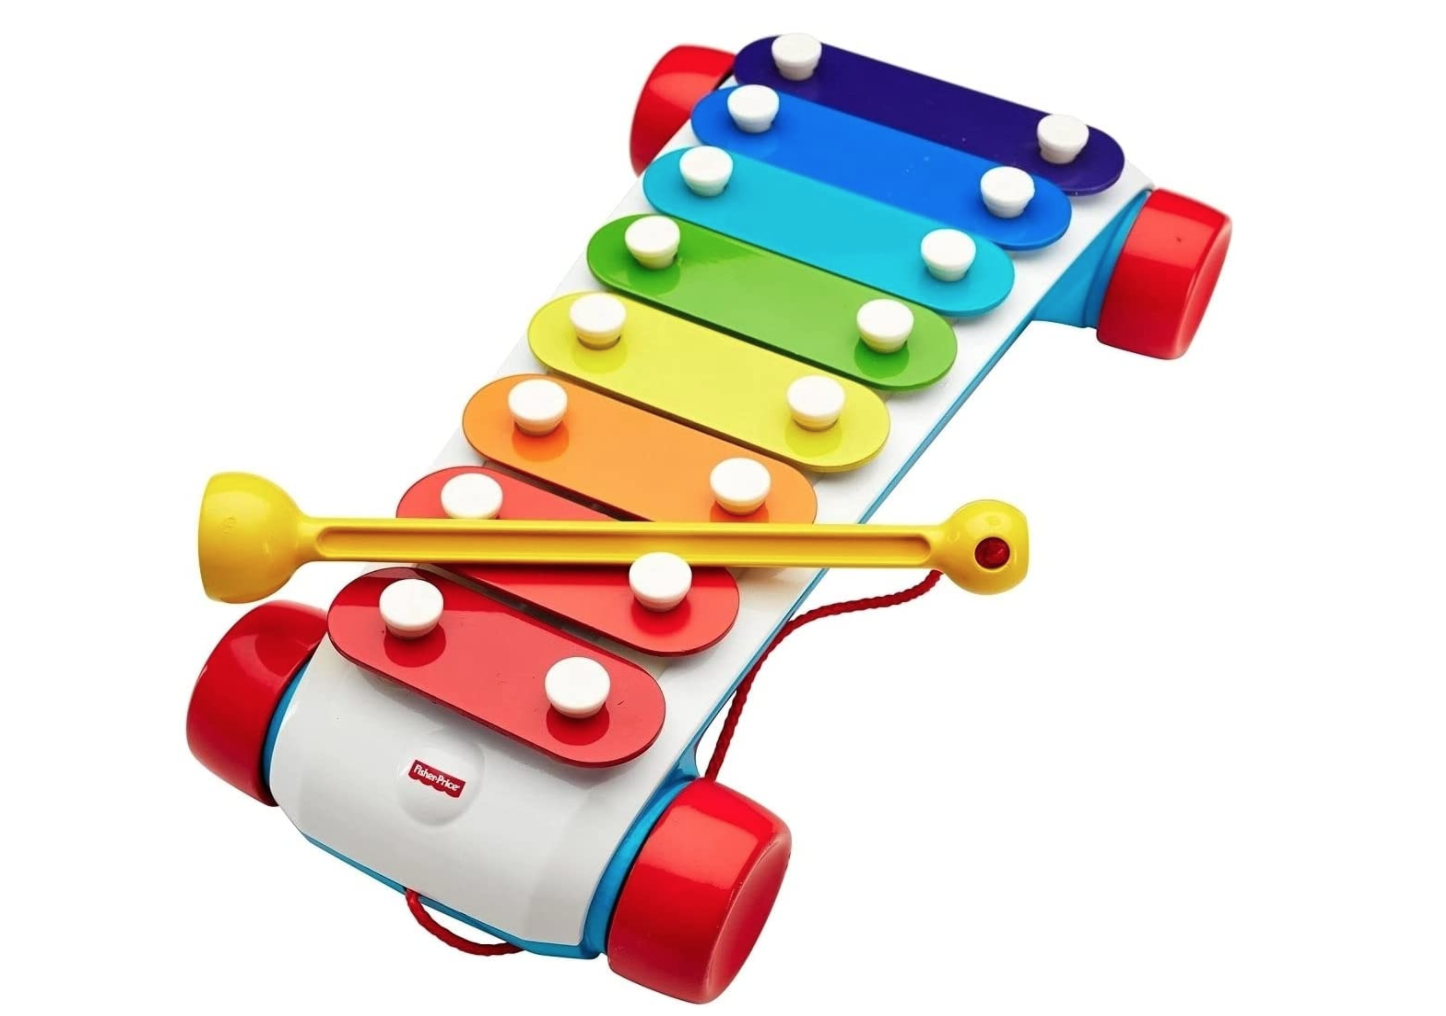 toy xylophone on wheels with rainbow keys and an attached yellow mallet